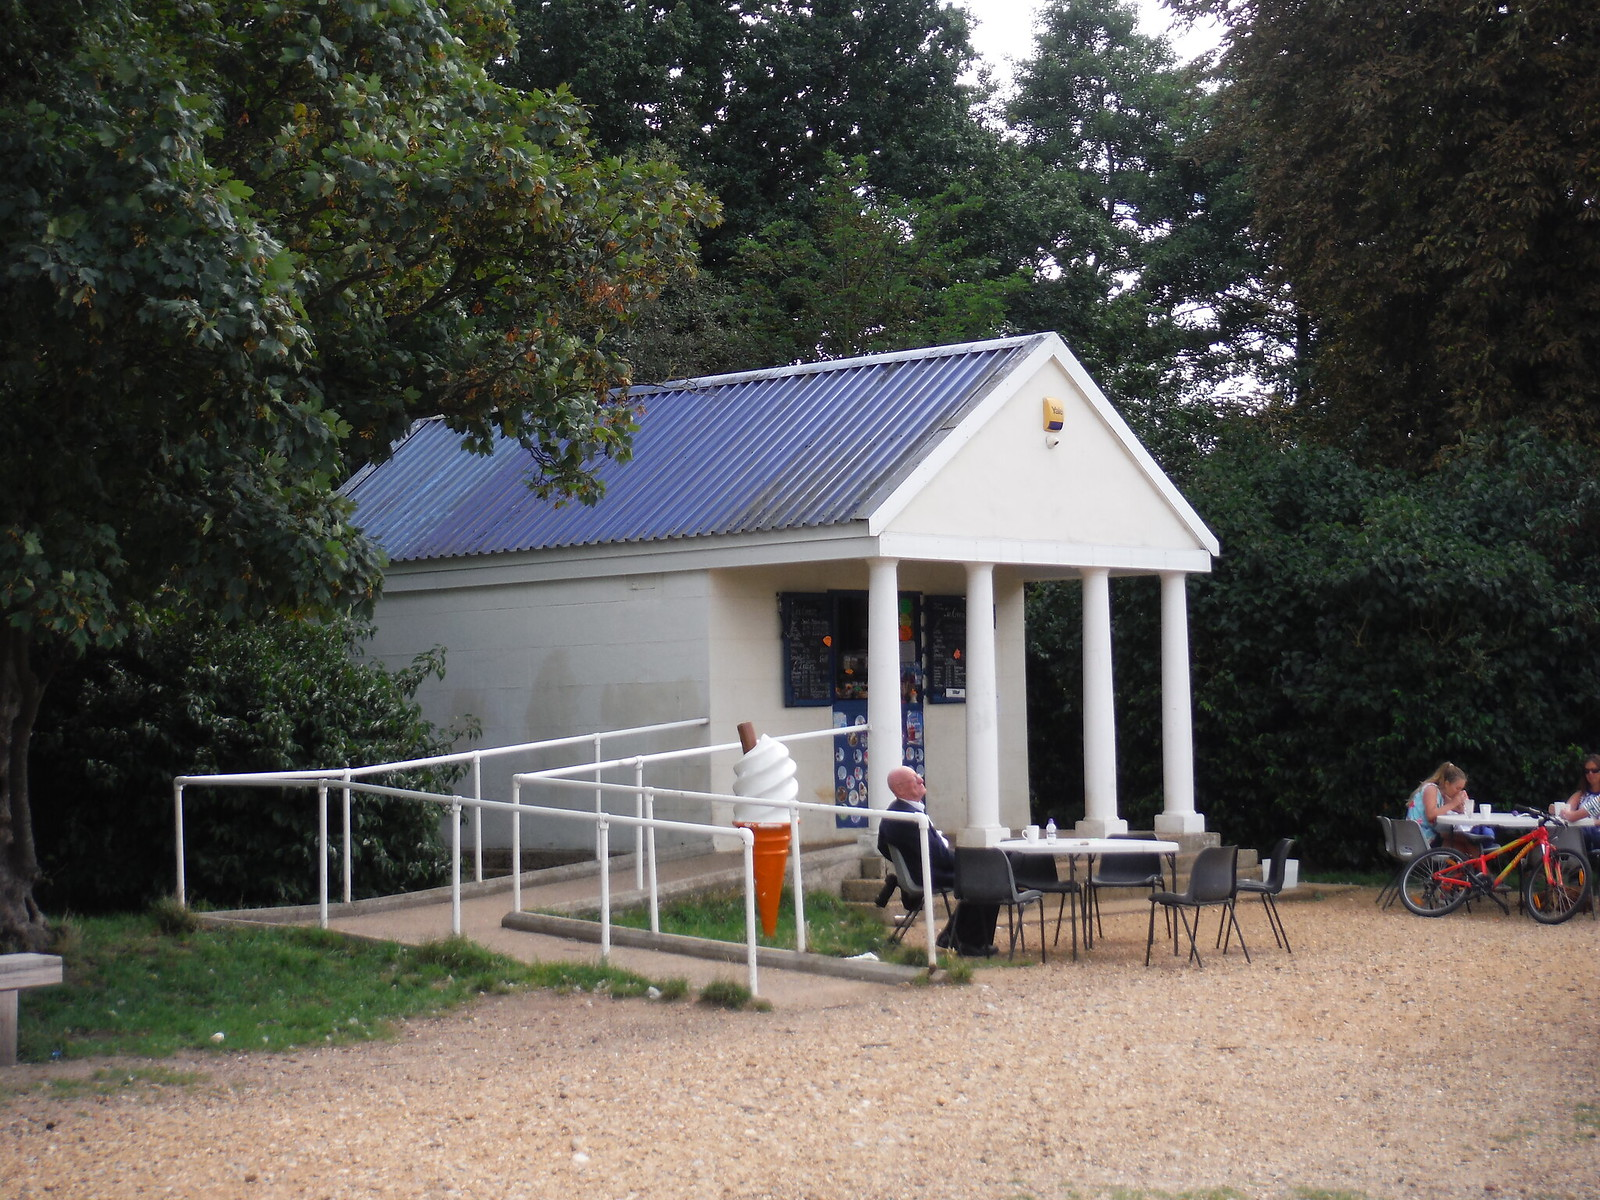 The Kiosk at Wanstead Park SWC Walk Short 11 - Wanstead Park